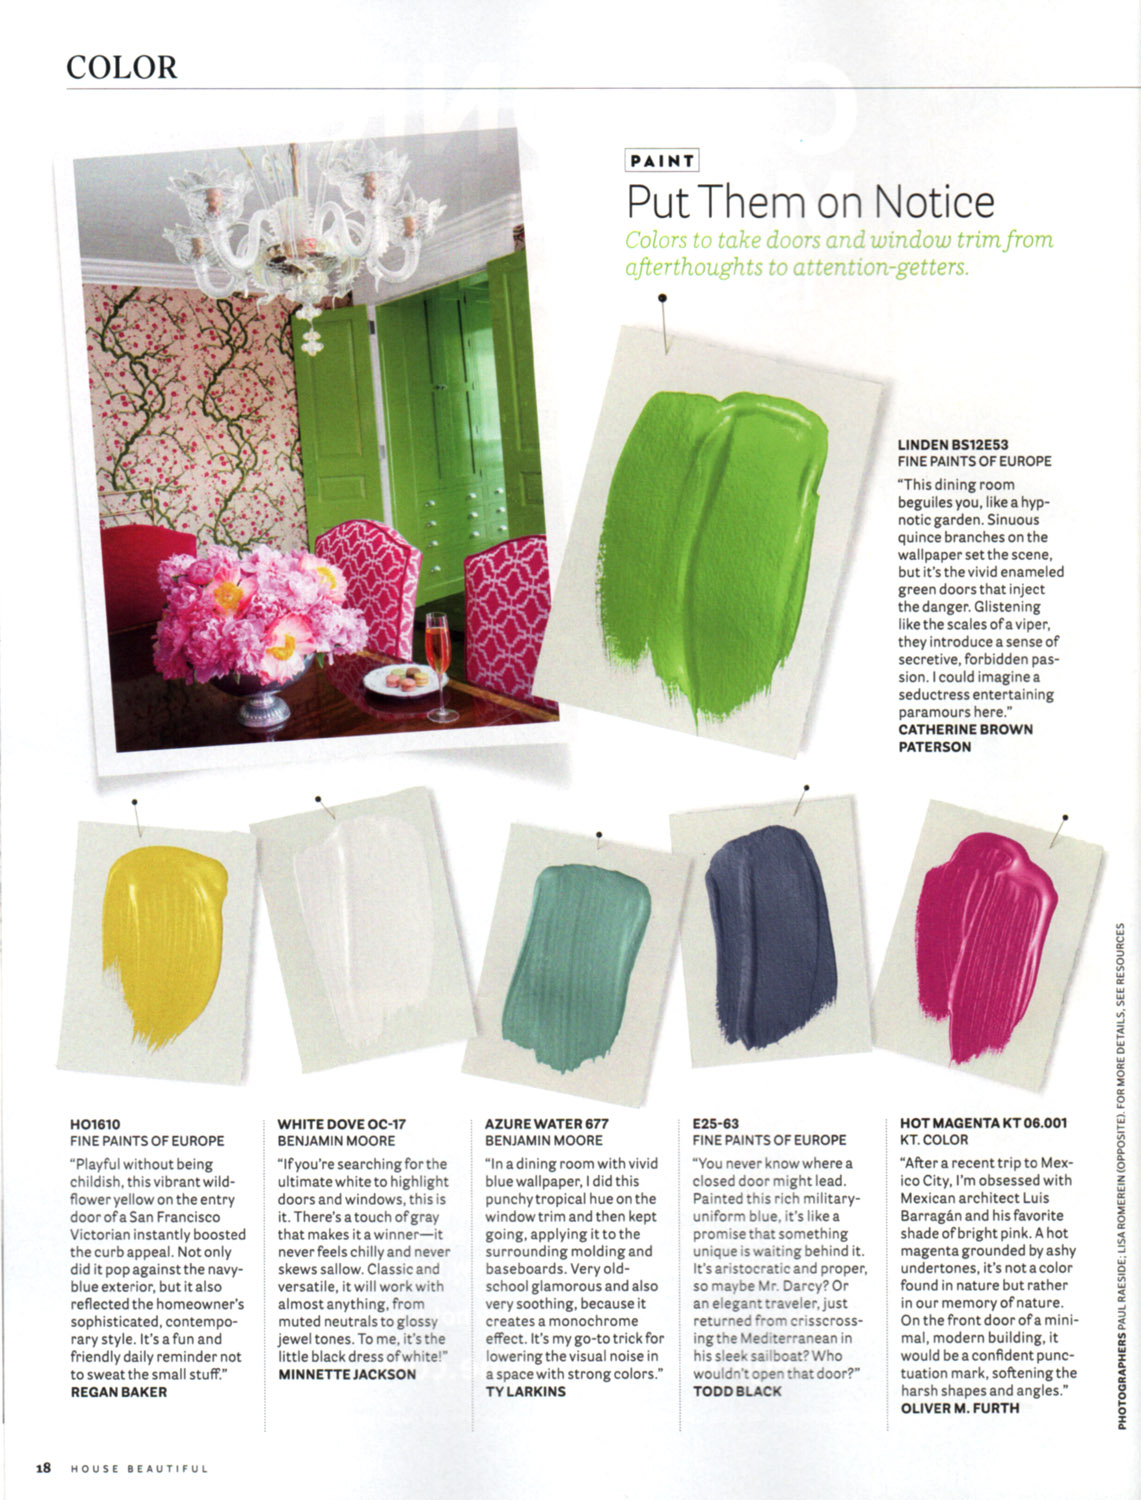 Paterson-housebeautiful 12-17-article.jpg